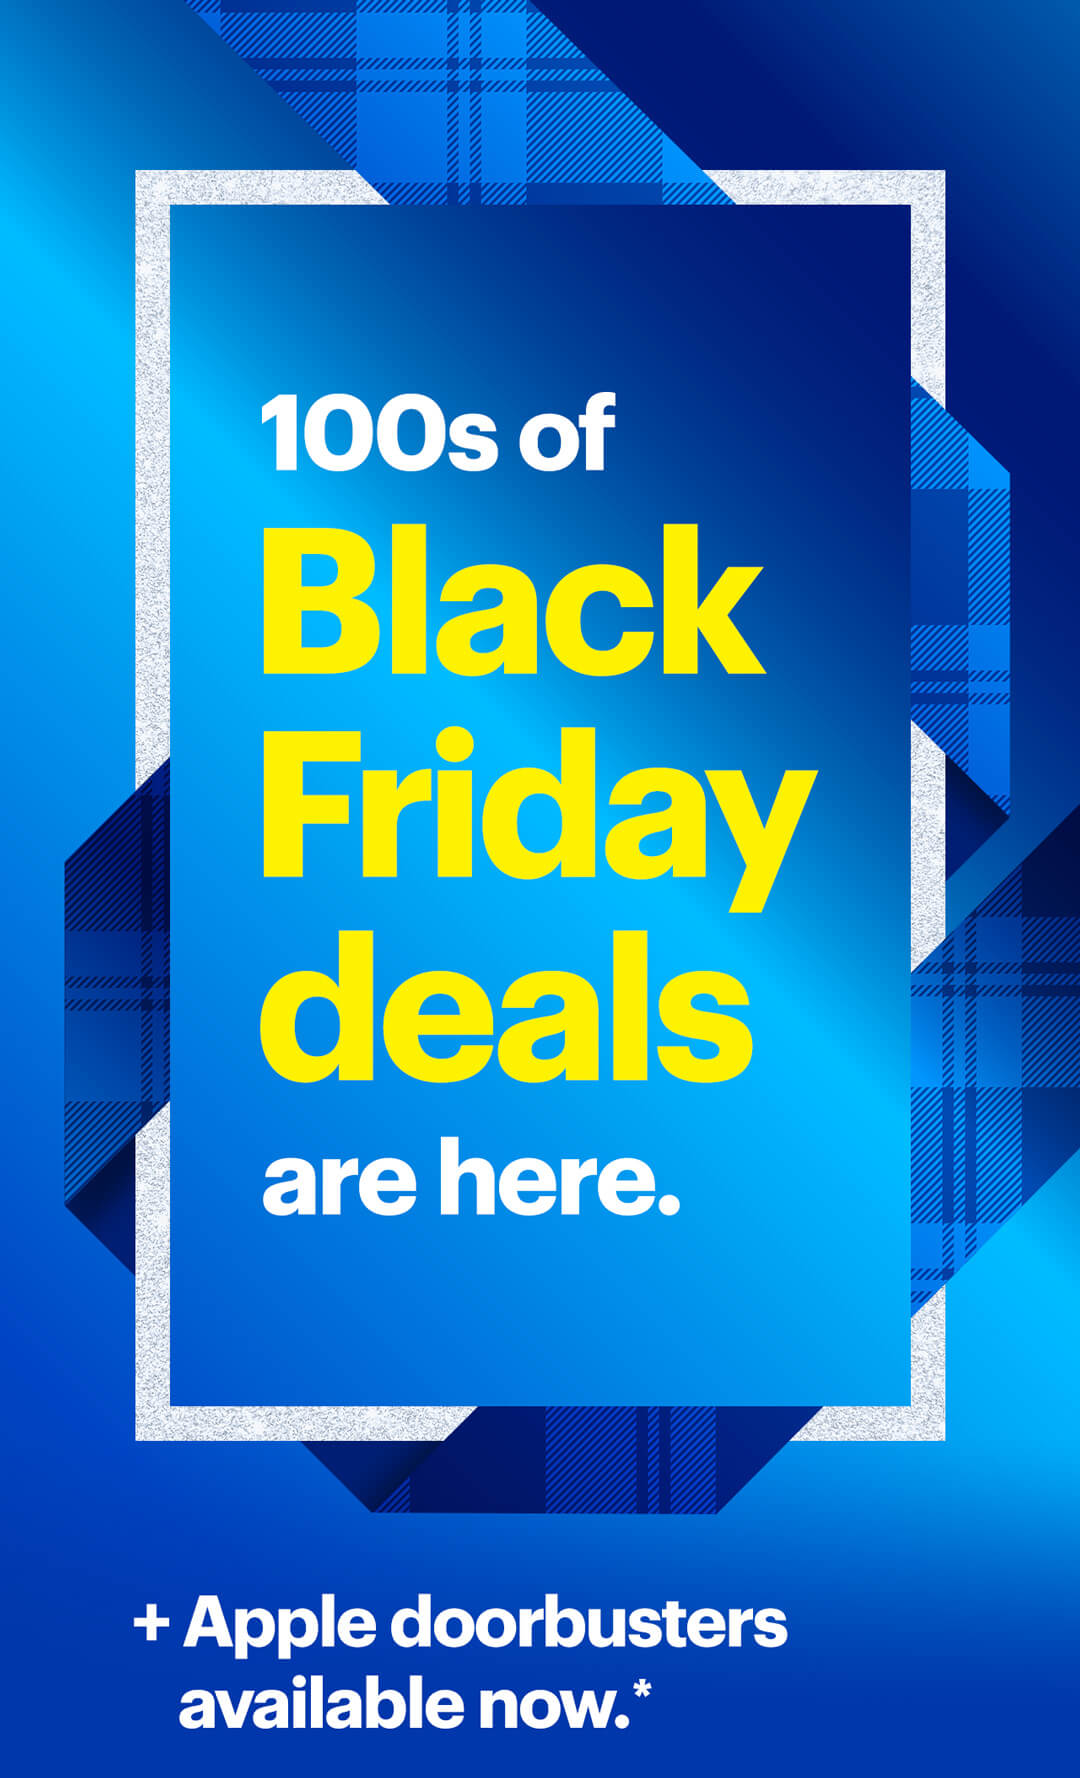 Hundreds of Black Friday deals are here. Plus, Apple doorbusters available now. Reference disclaimer.